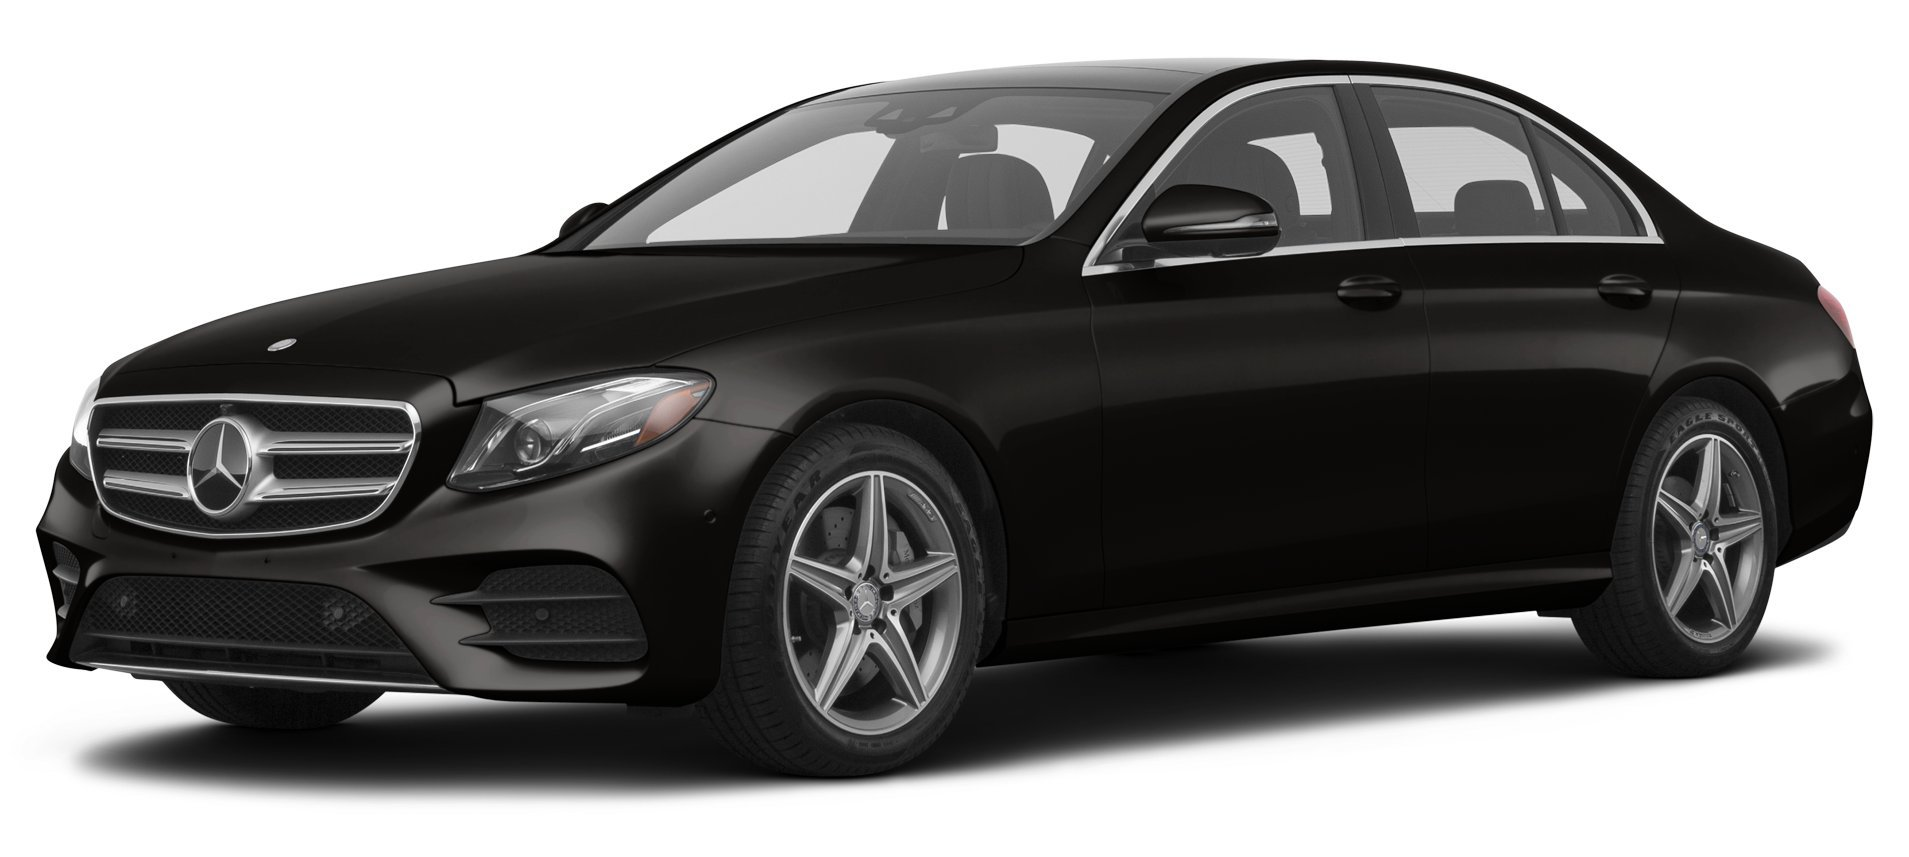 2017 mercedes benz e300 reviews images and